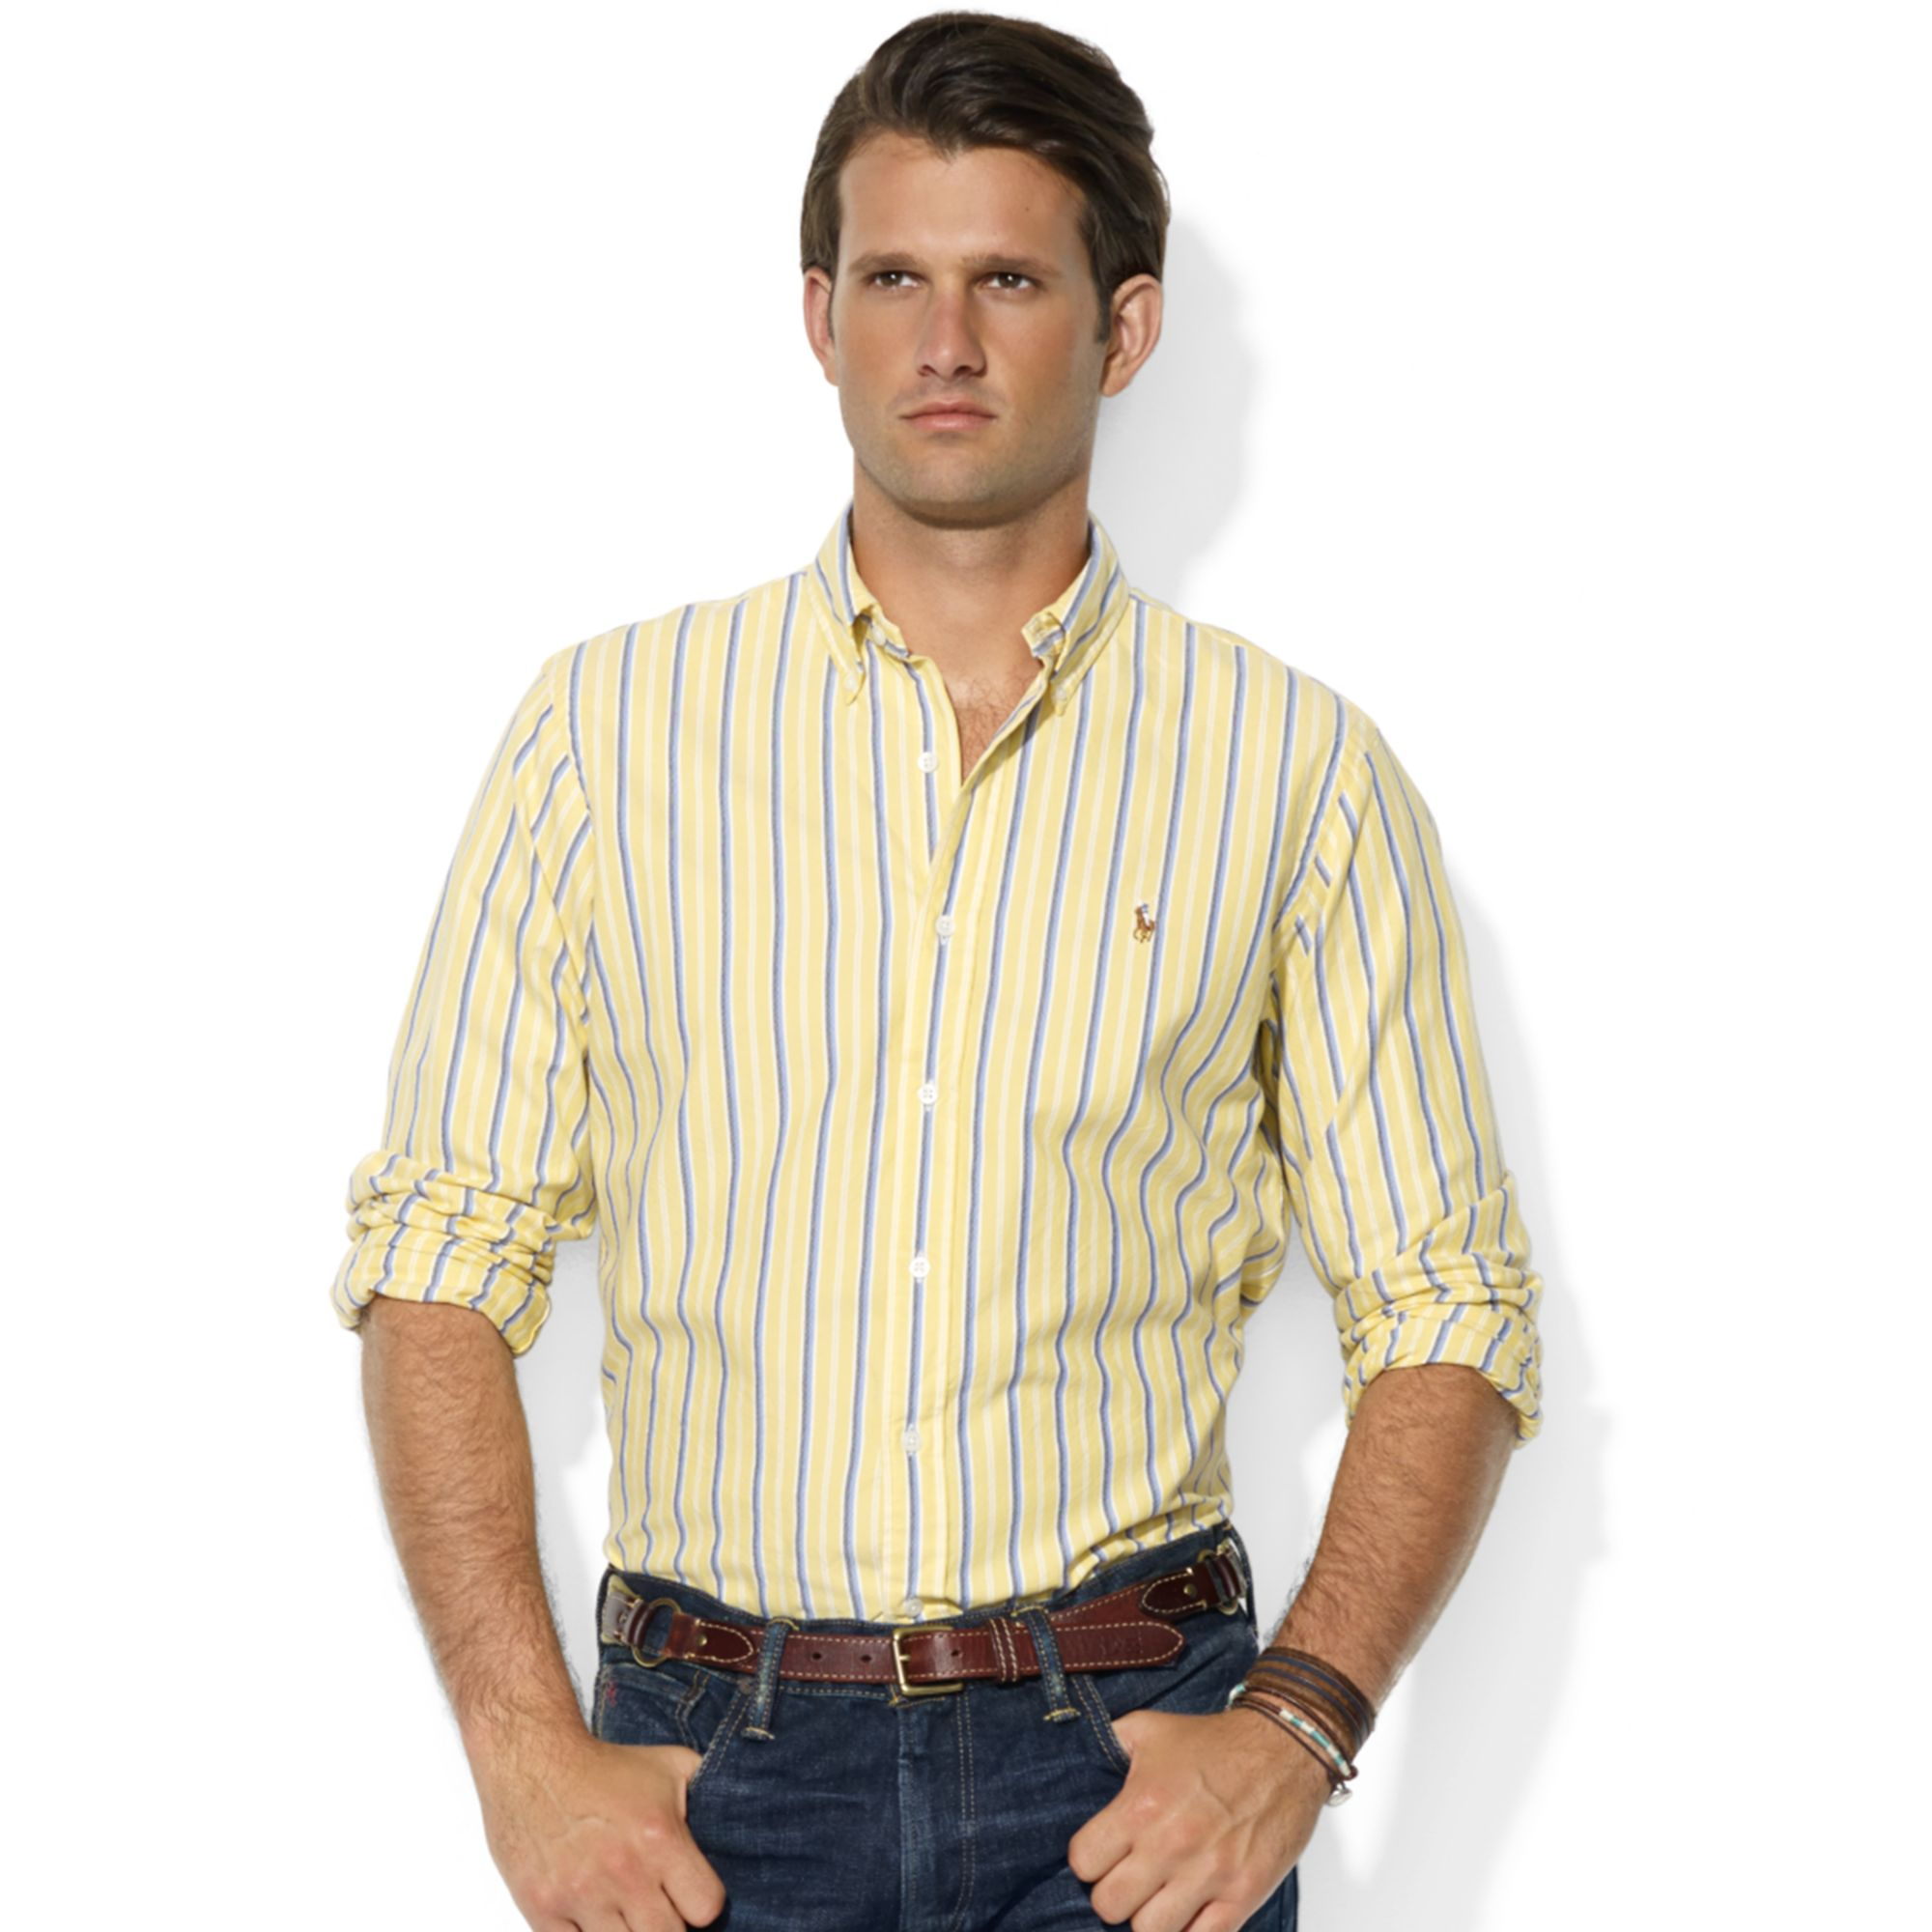 ralph lauren classicfit longsleeve striped cotton oxford shirt in yellow for men yellow blue. Black Bedroom Furniture Sets. Home Design Ideas